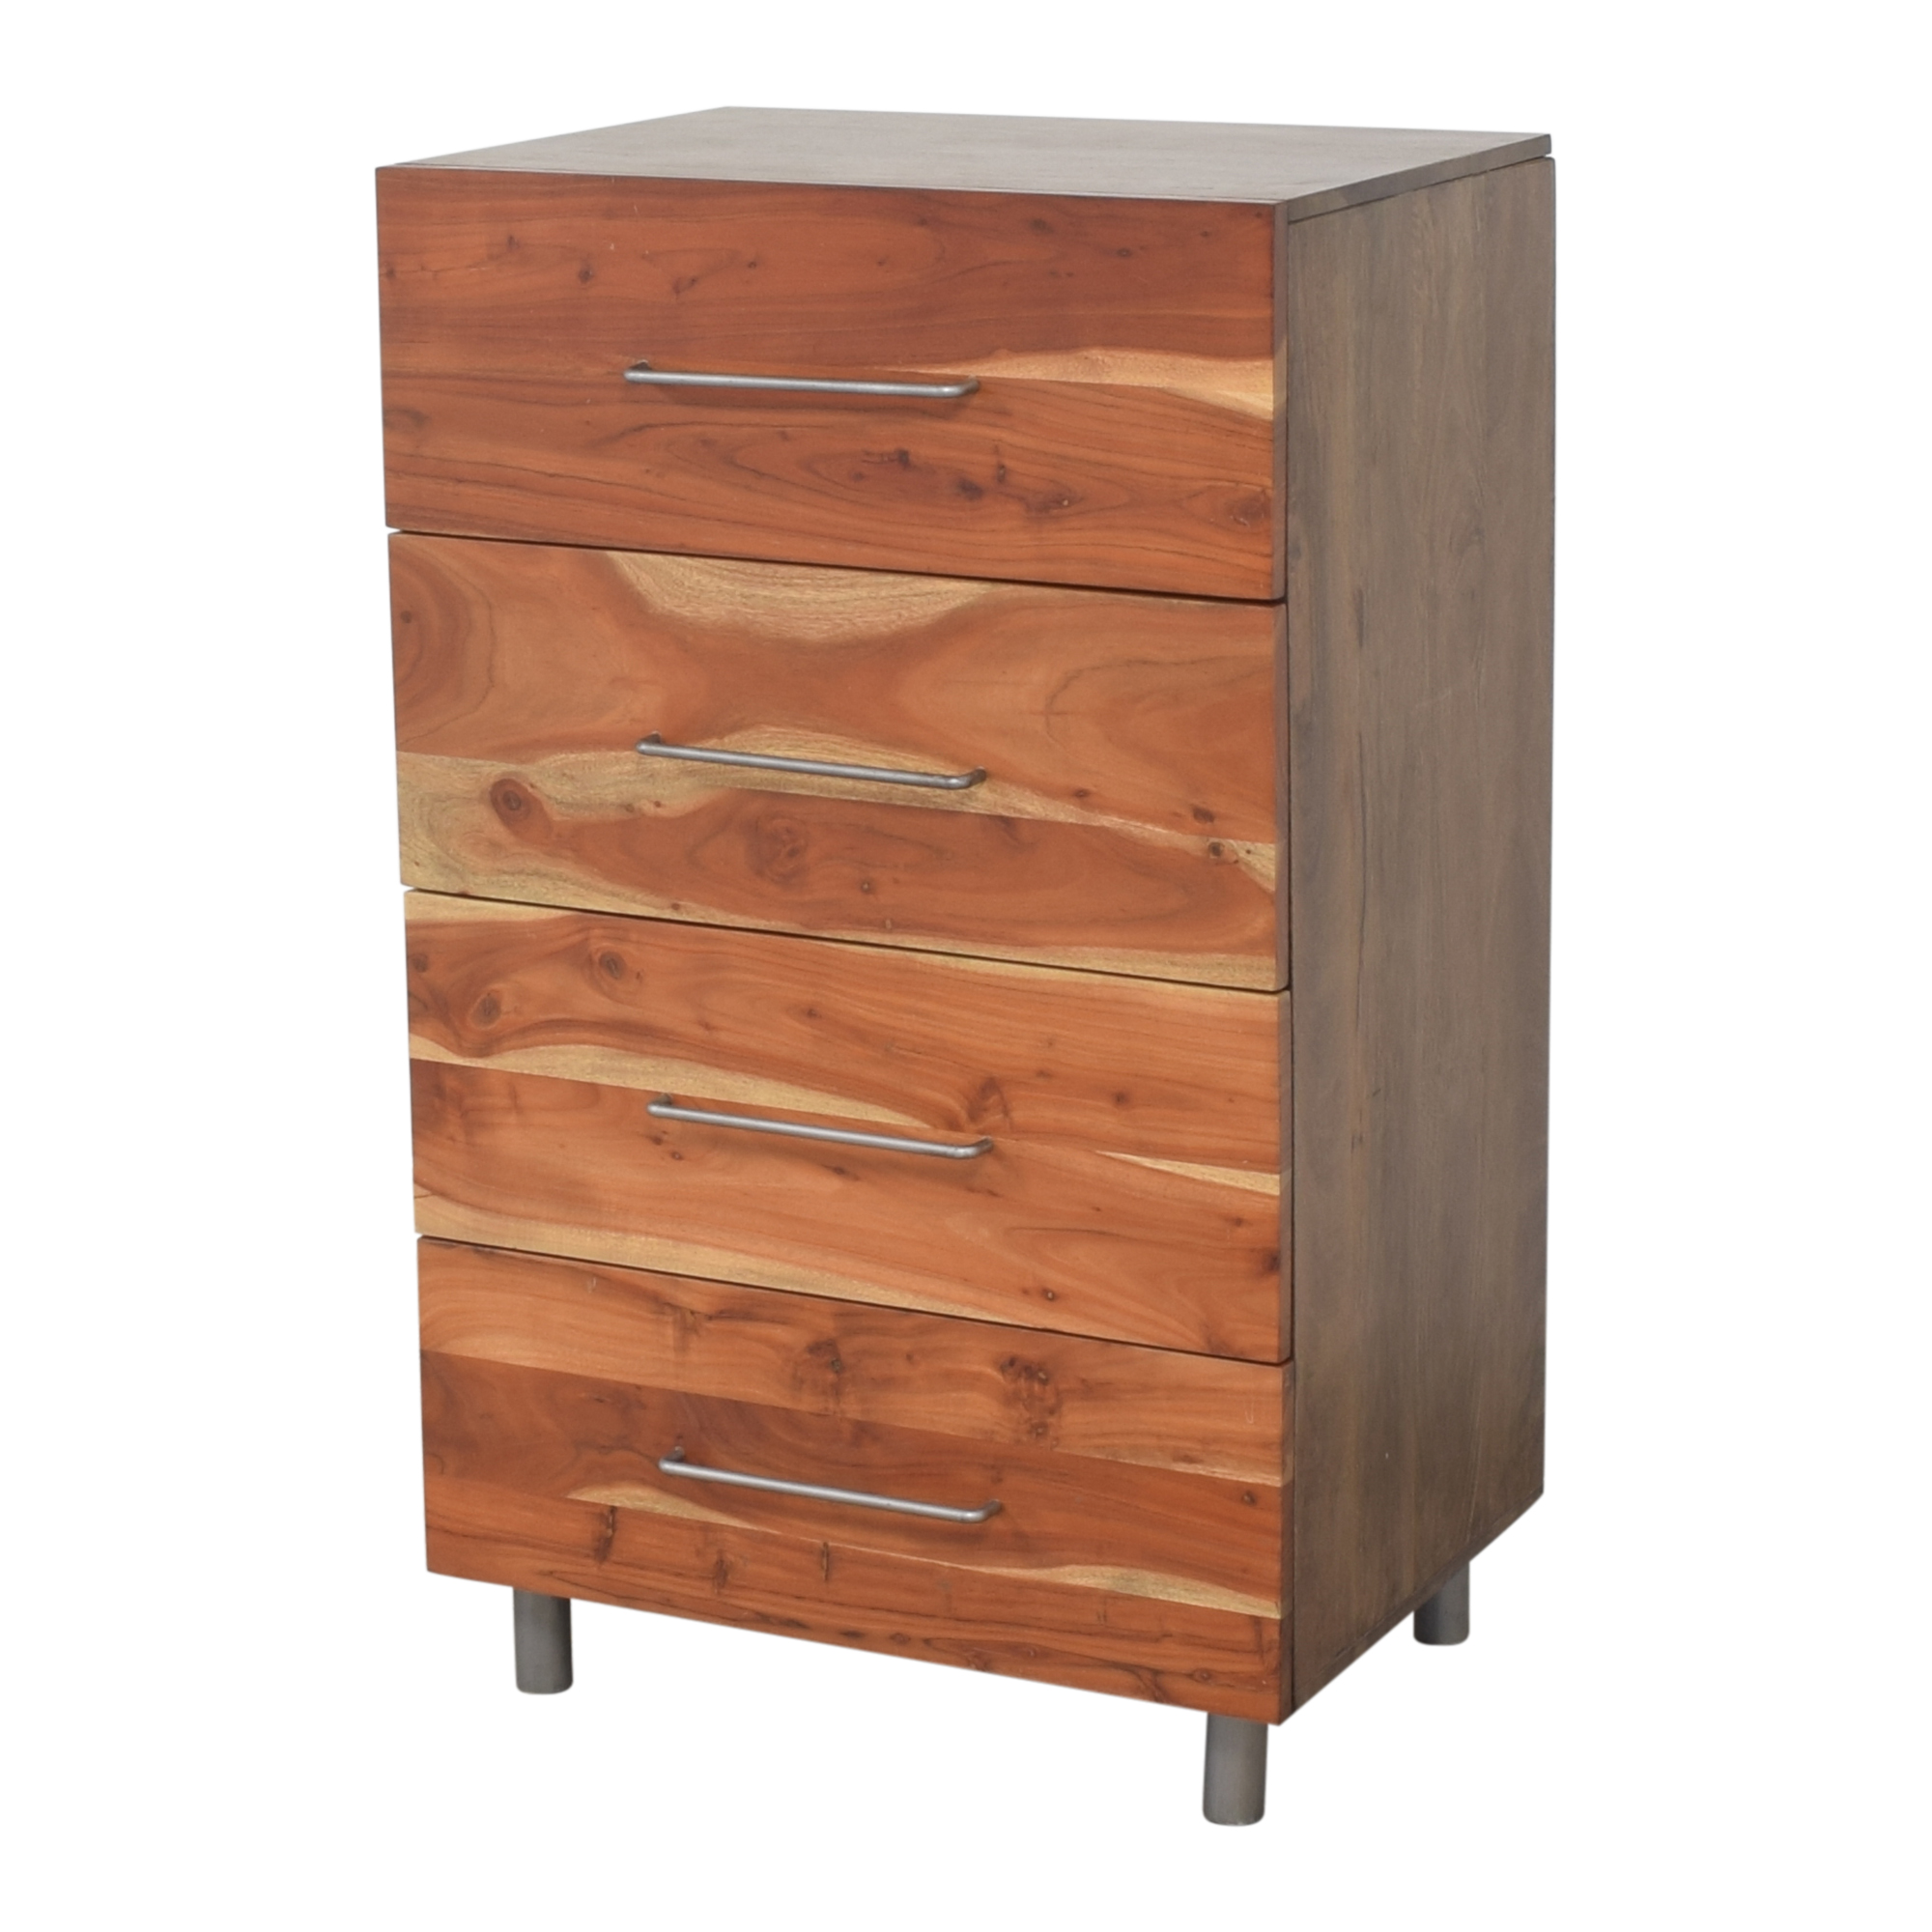 CB2 CB2 Four Drawer Chest dimensions